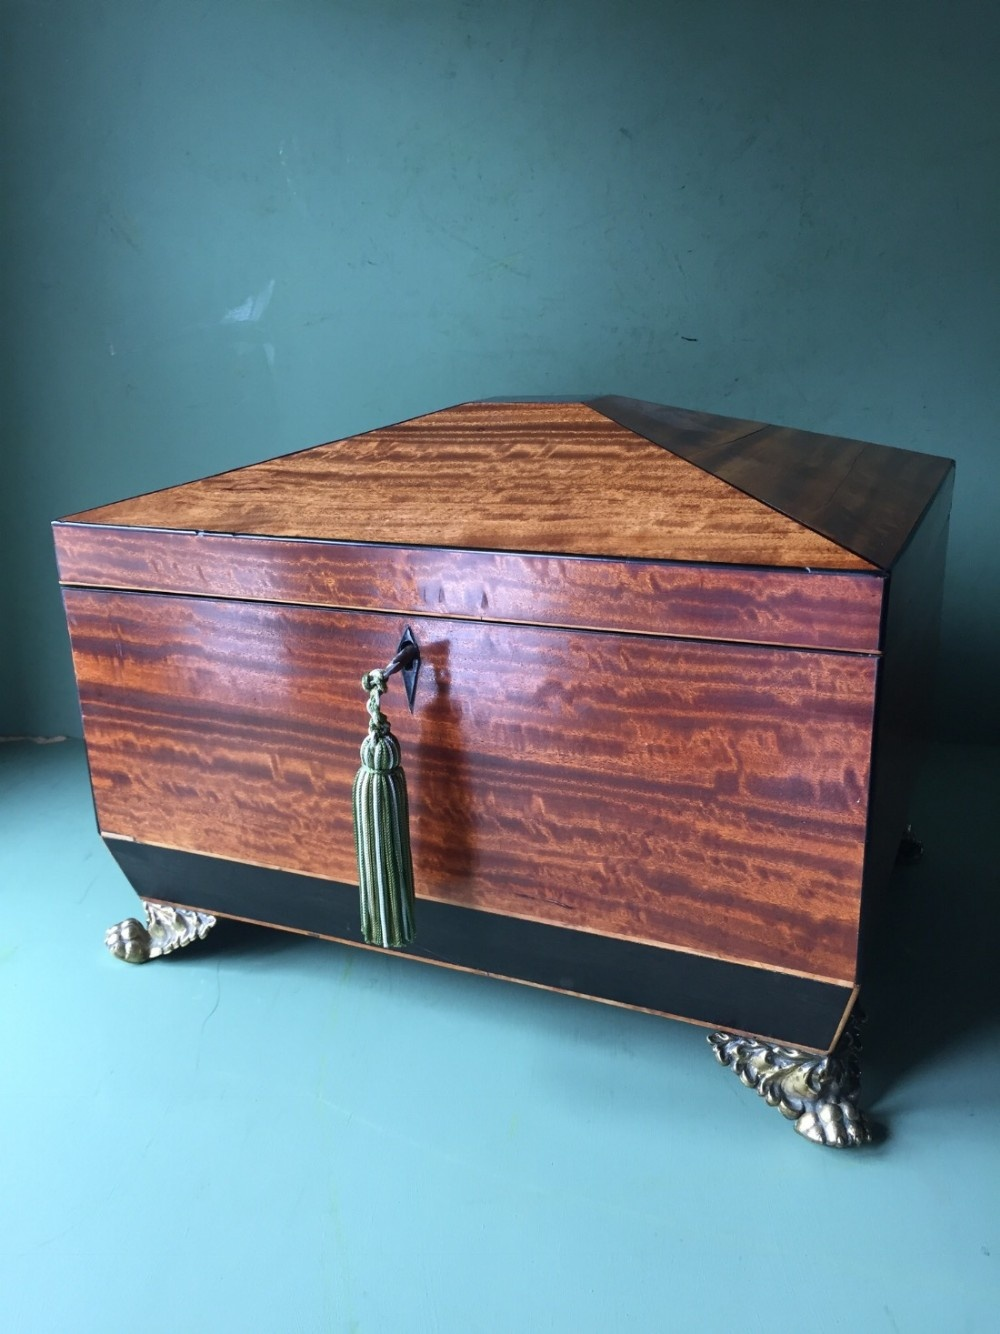 early c19th regency period satinwood and ebony sewing casket or box of sarcophagus form